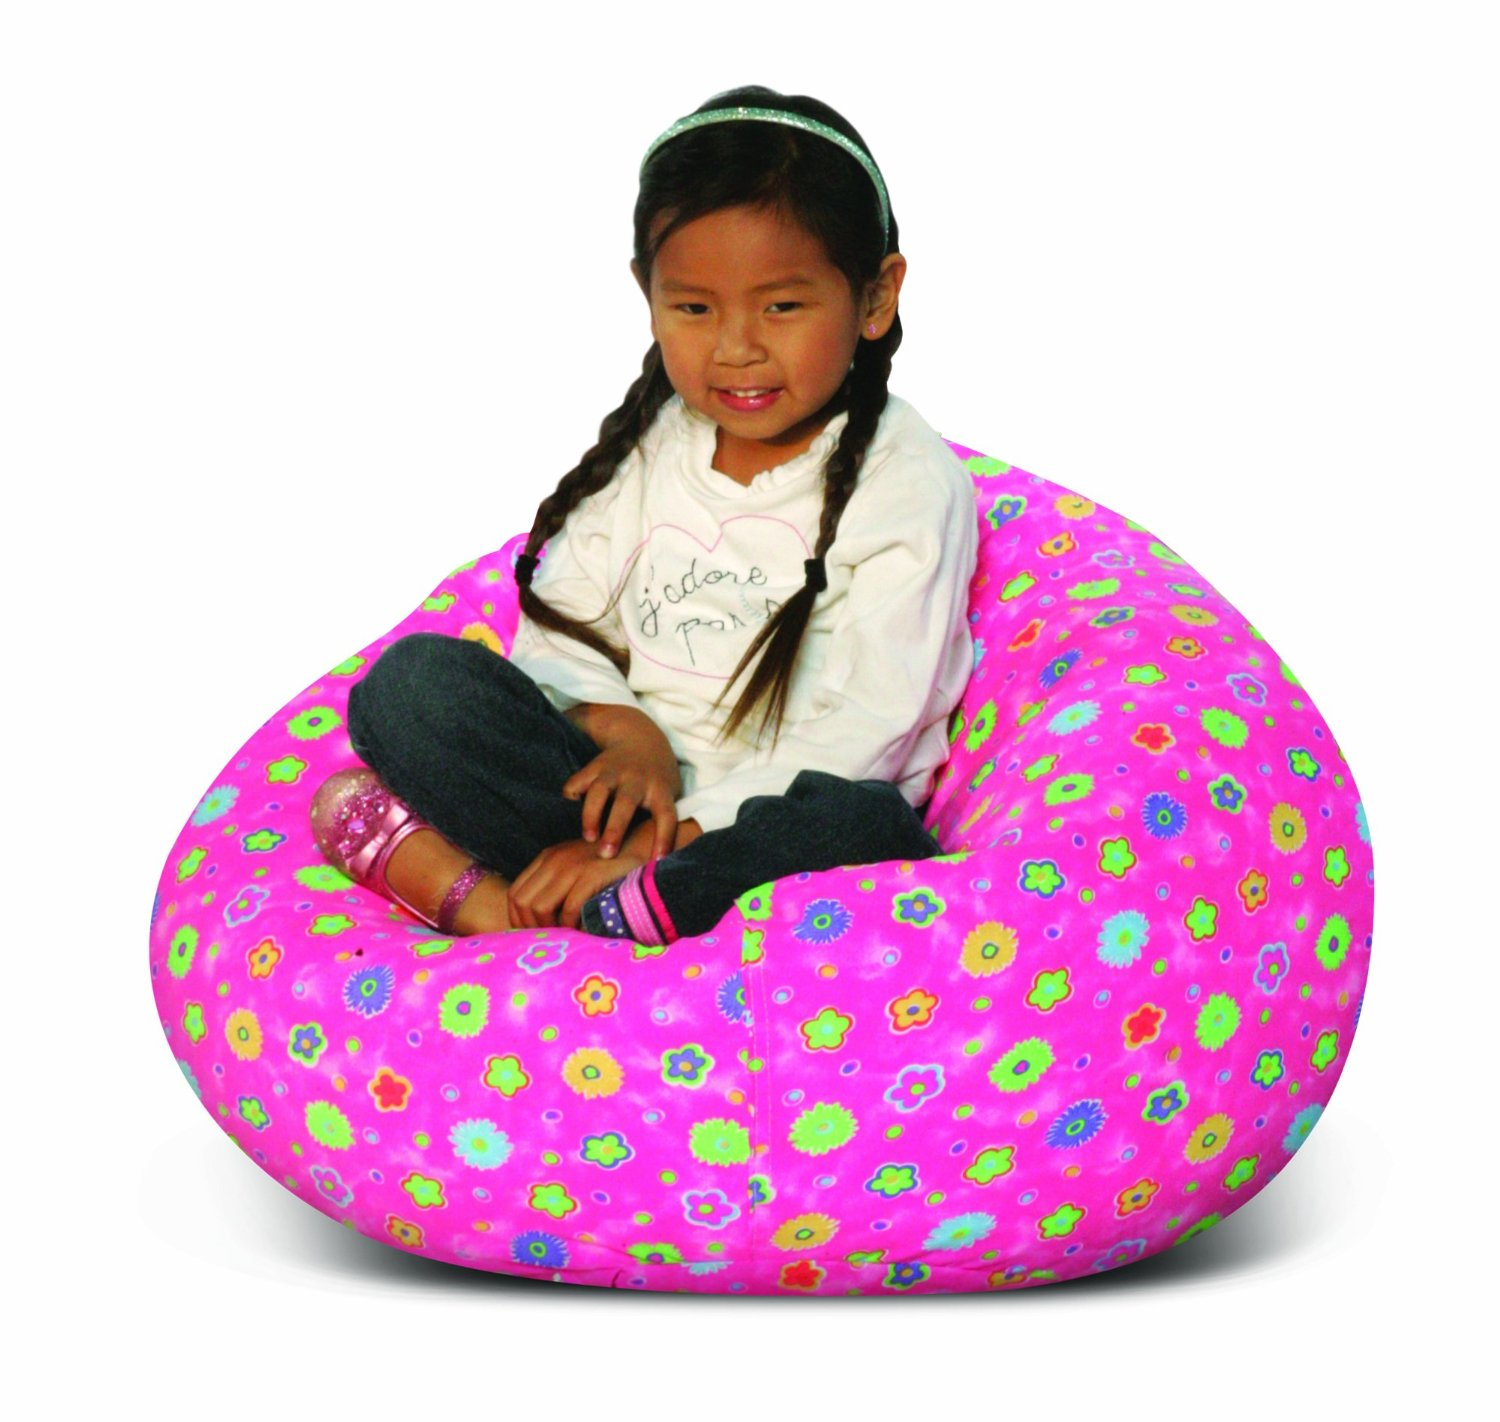 Childu0027s Print Collection (Pink Flower) Jr. Child Bean Bag Chairs for Kids ...  sc 1 st  JonsGuide & Top 10 Best Bean Bag Chairs for Kids Reviews - (2018)